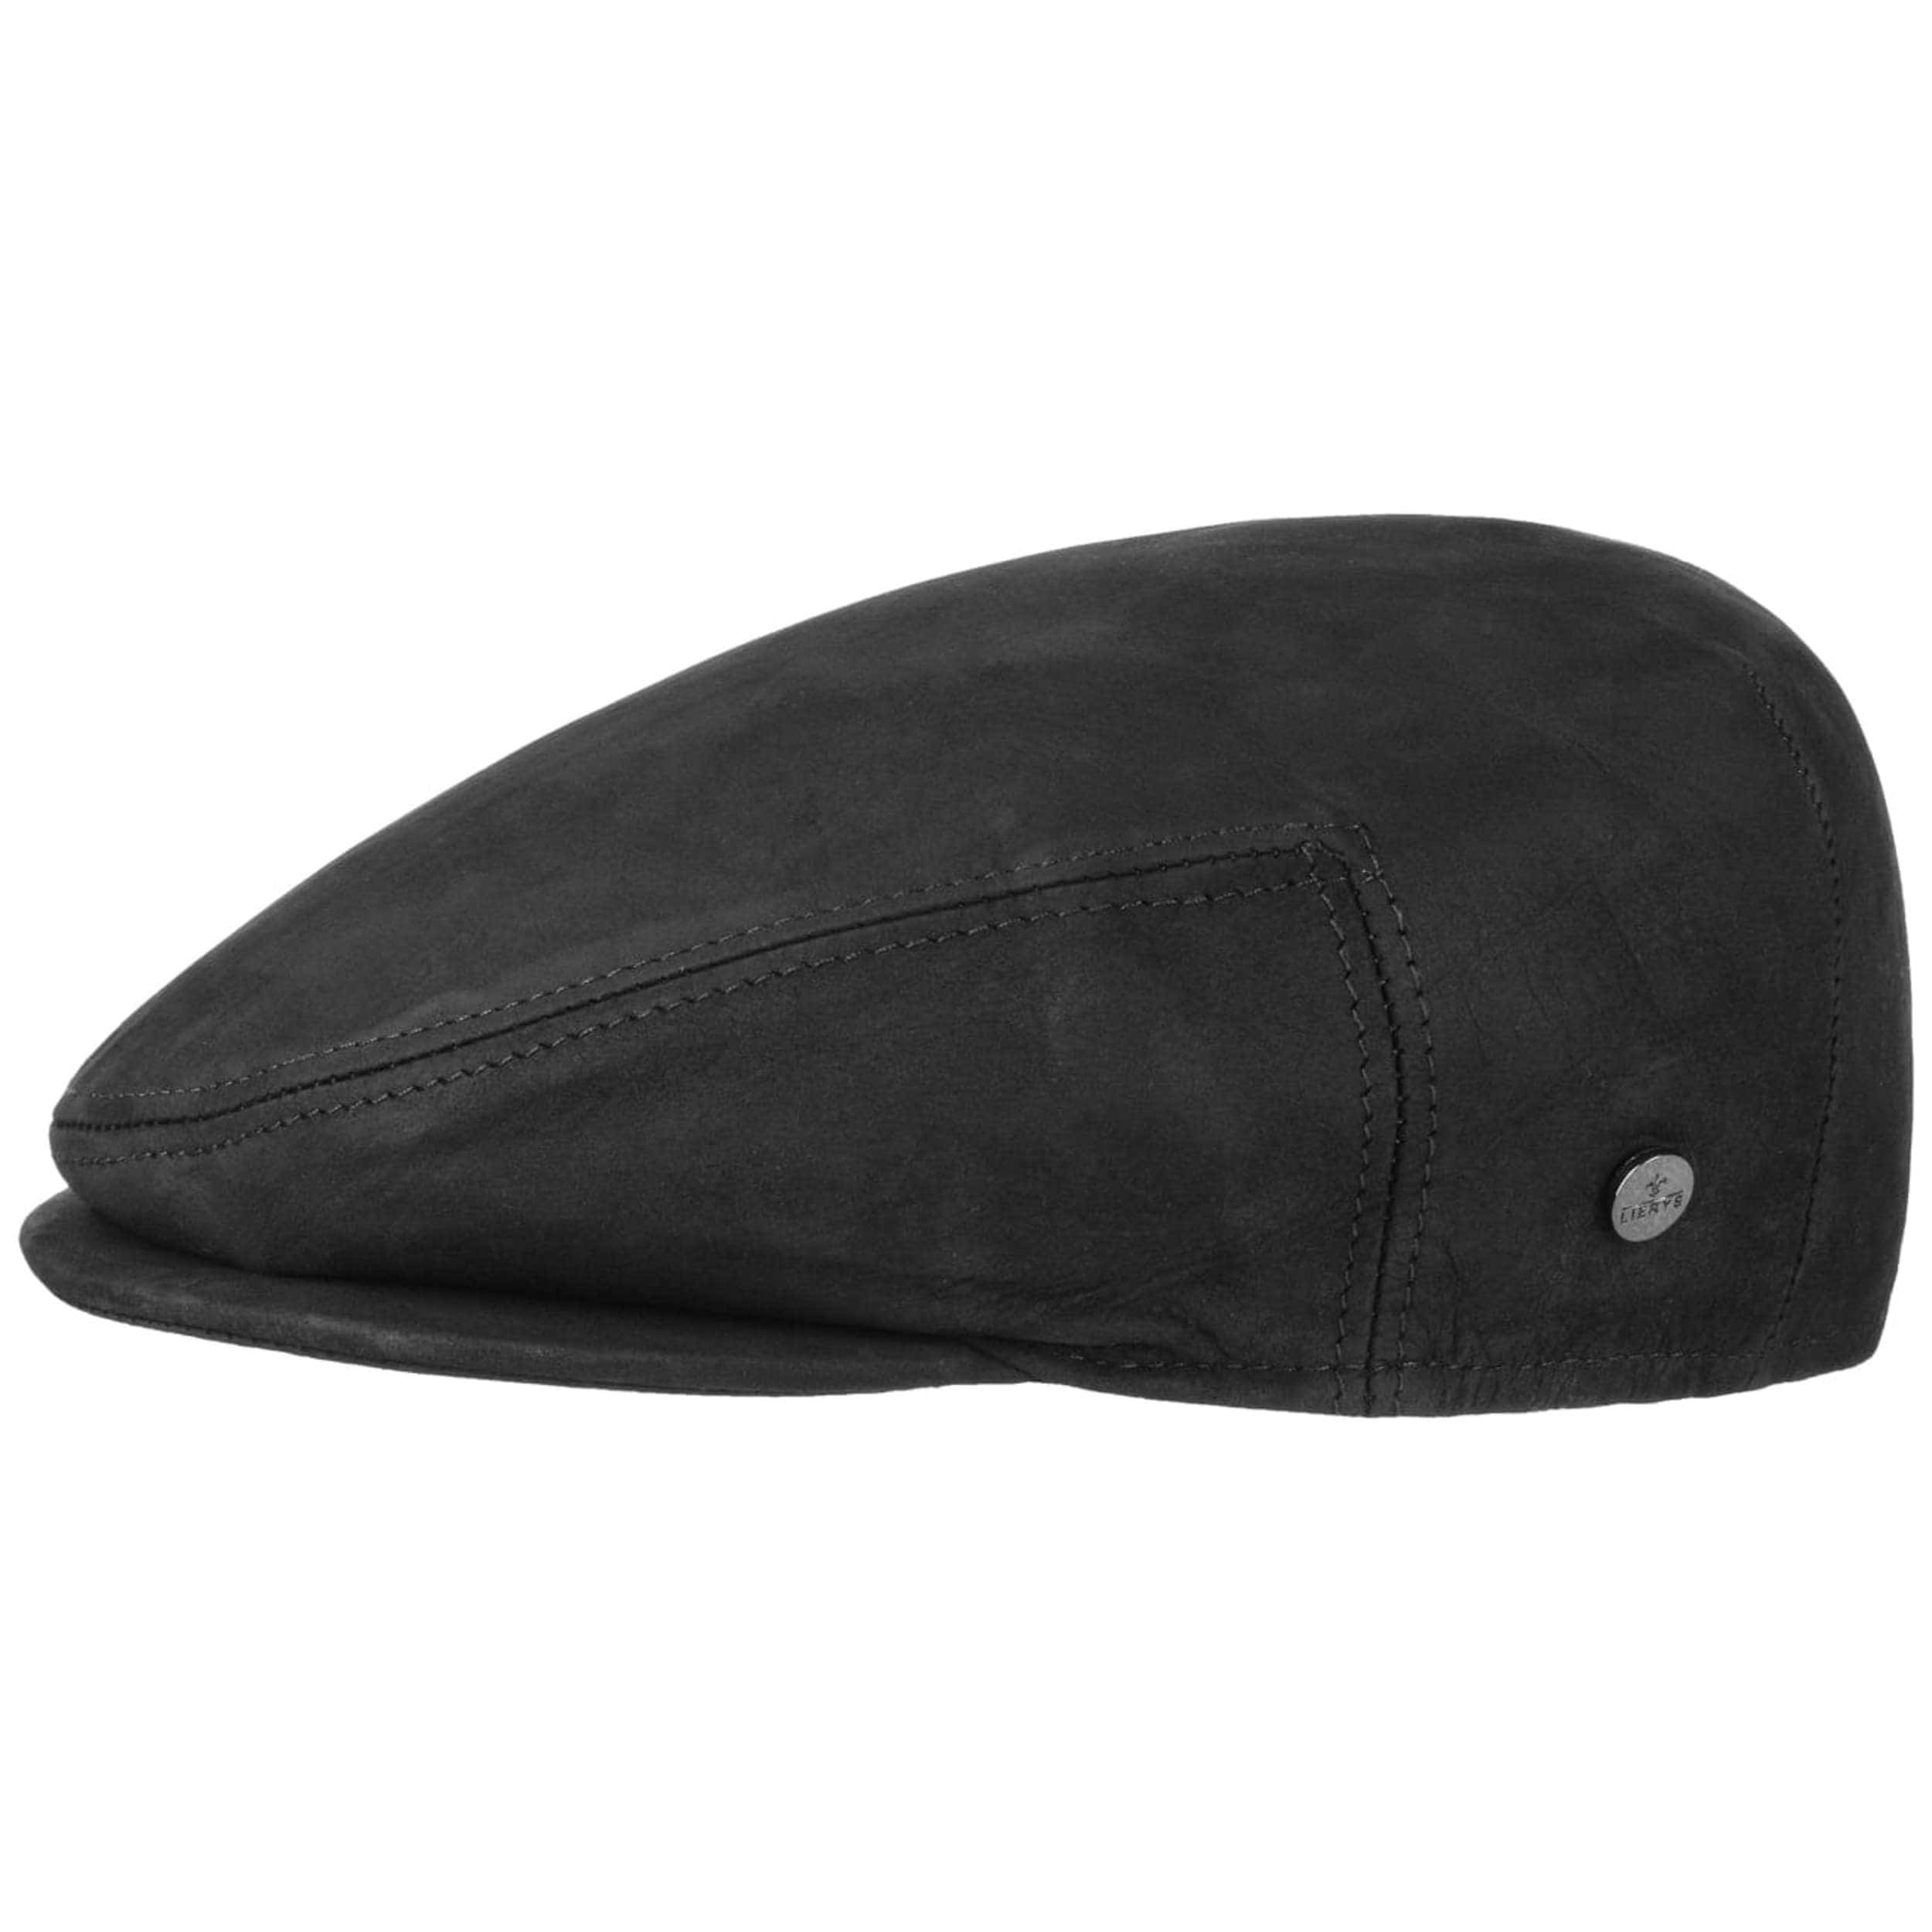 A flat cap is a rounded cap with a small stiff brim in front. The hat is also known in Scotland as a bunnet, in Wales as a Dai cap, and in New Zealand, as a cheese-cutter. Cloths used to make the cap include wool, tweed, and cotton. Less common materials may include leather, linen, or corduroy. The inside of the cap is commonly lined for comfort and warmth.